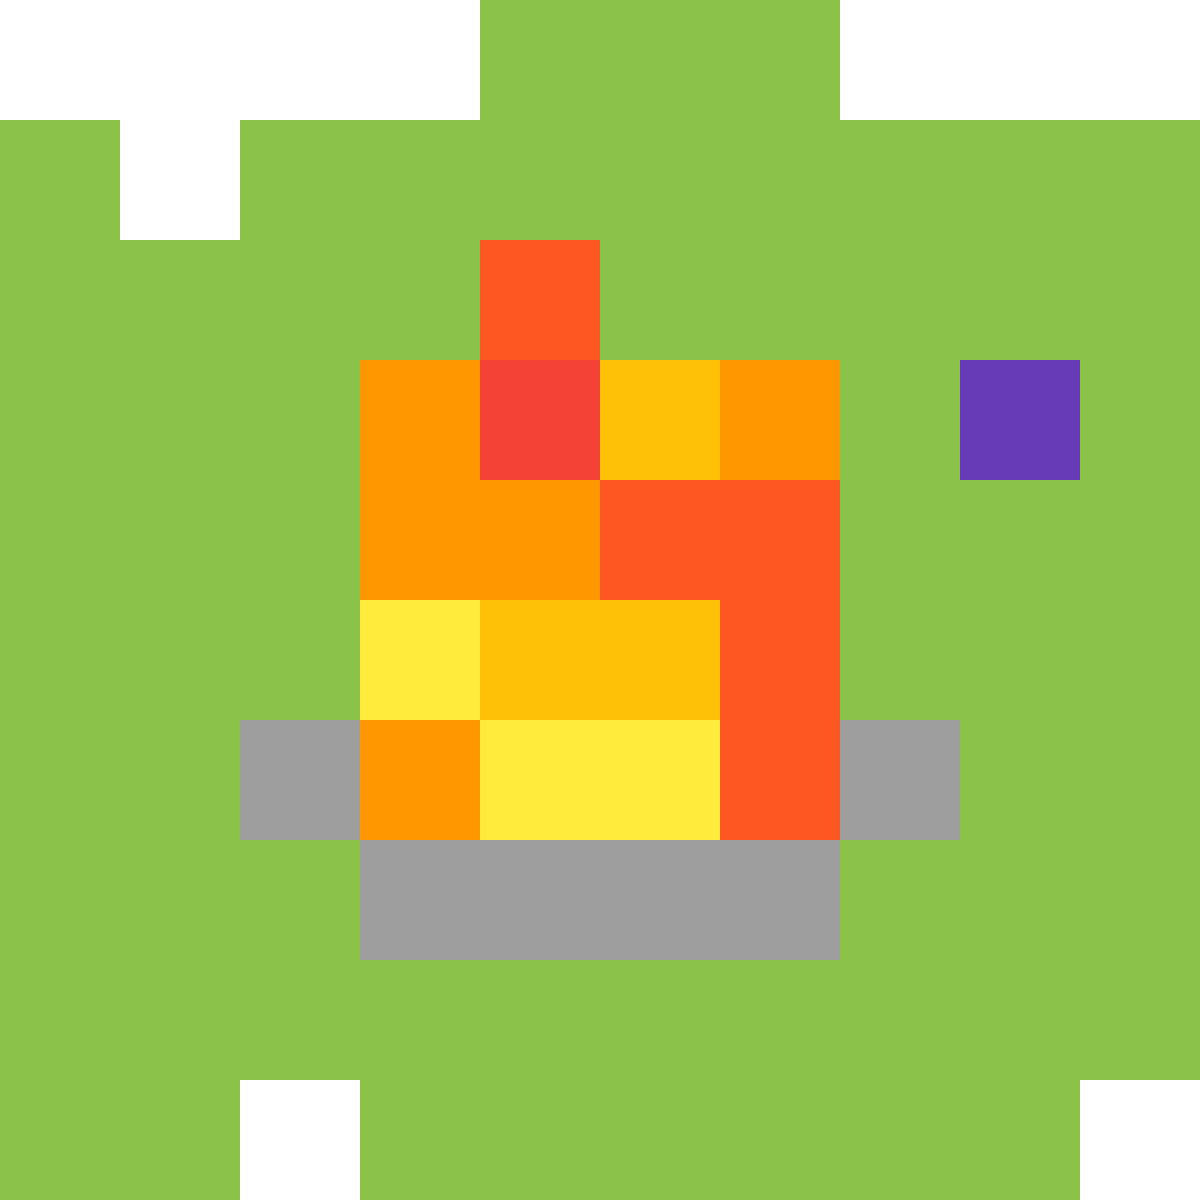 main-image-Campfire sizing gone wrong  by TylerPatterson